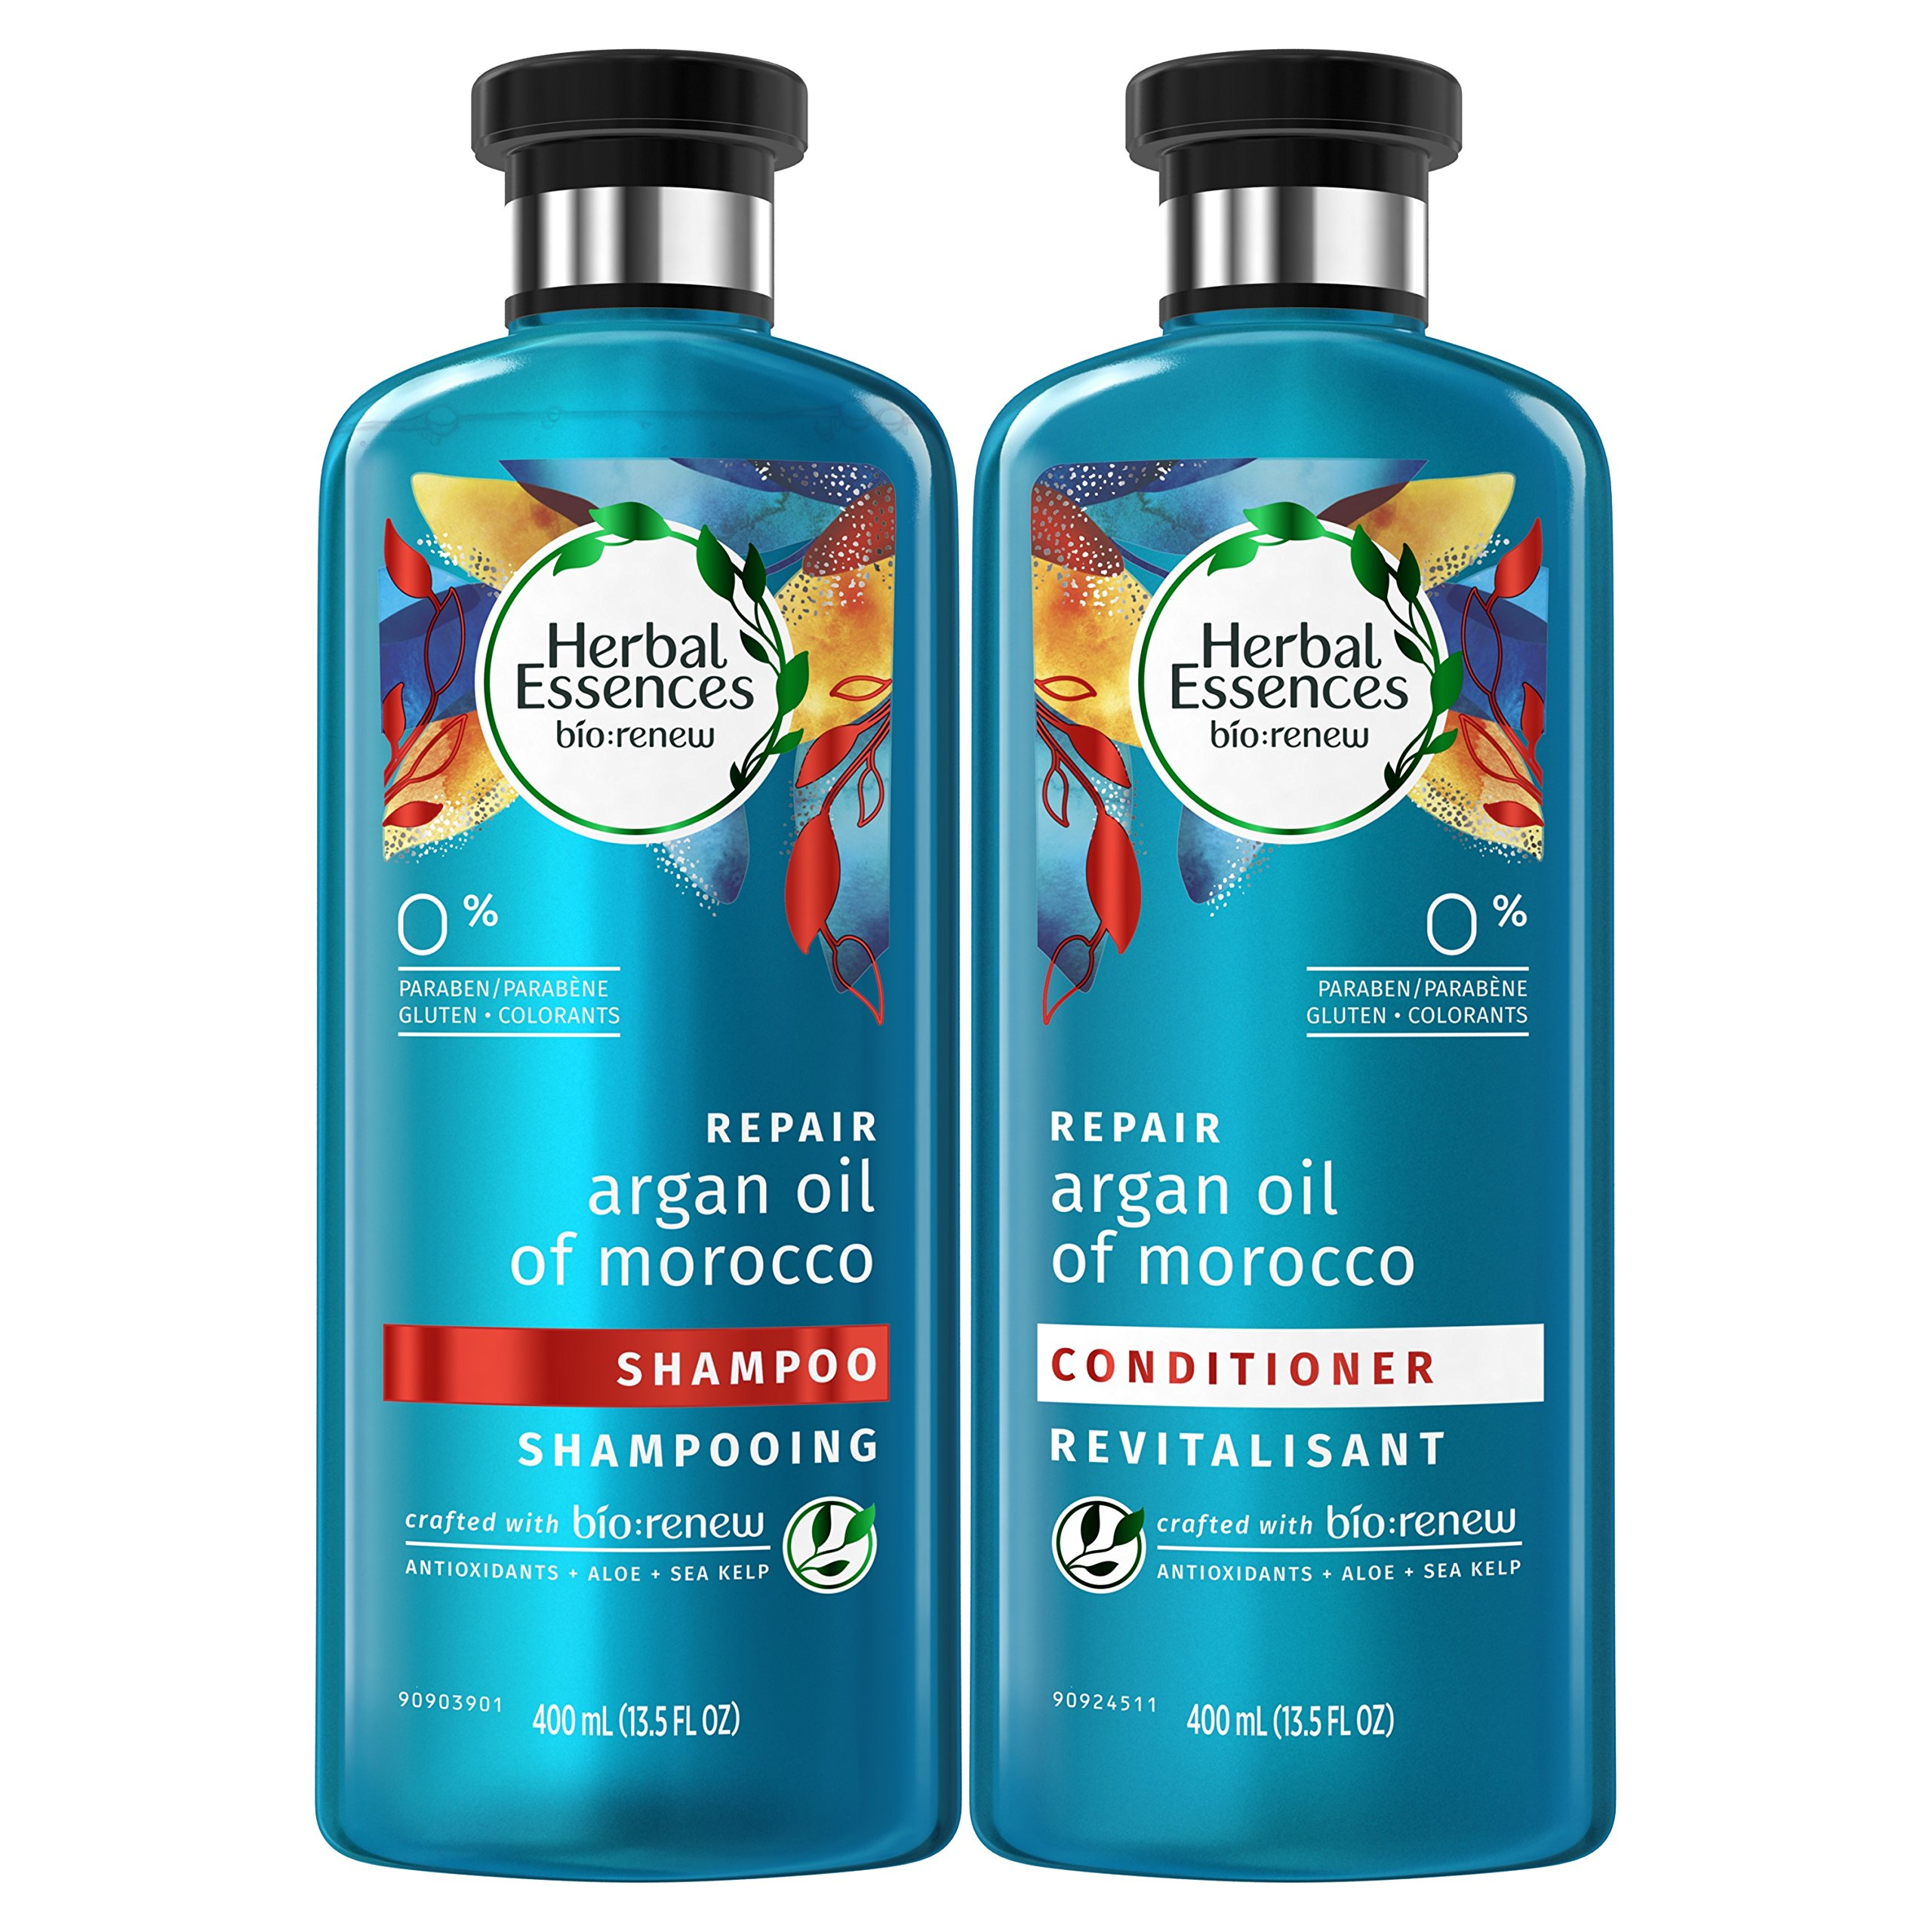 Herbal Essences Argan Oil of Morocco Shampoo and Conditioner for Color Treated Hair, Paraben Free, BioRenew, Bundle Pack, 13.5 FL OZ